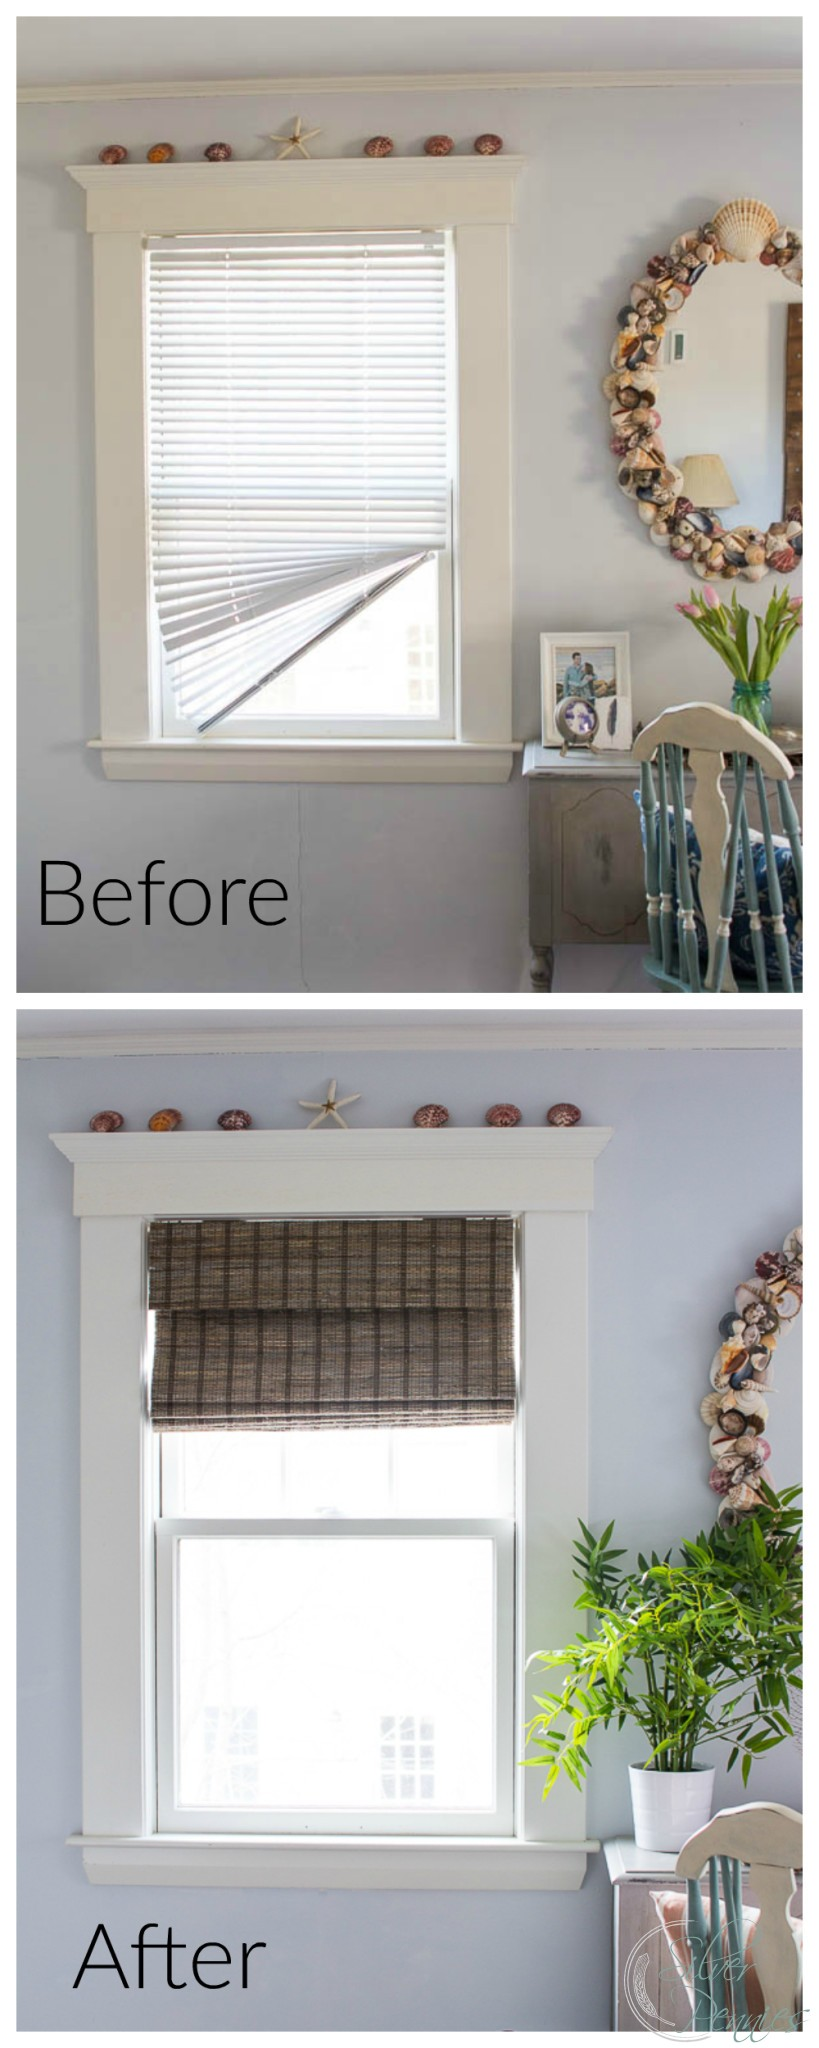 Before and After New Blinds in the Bedroom